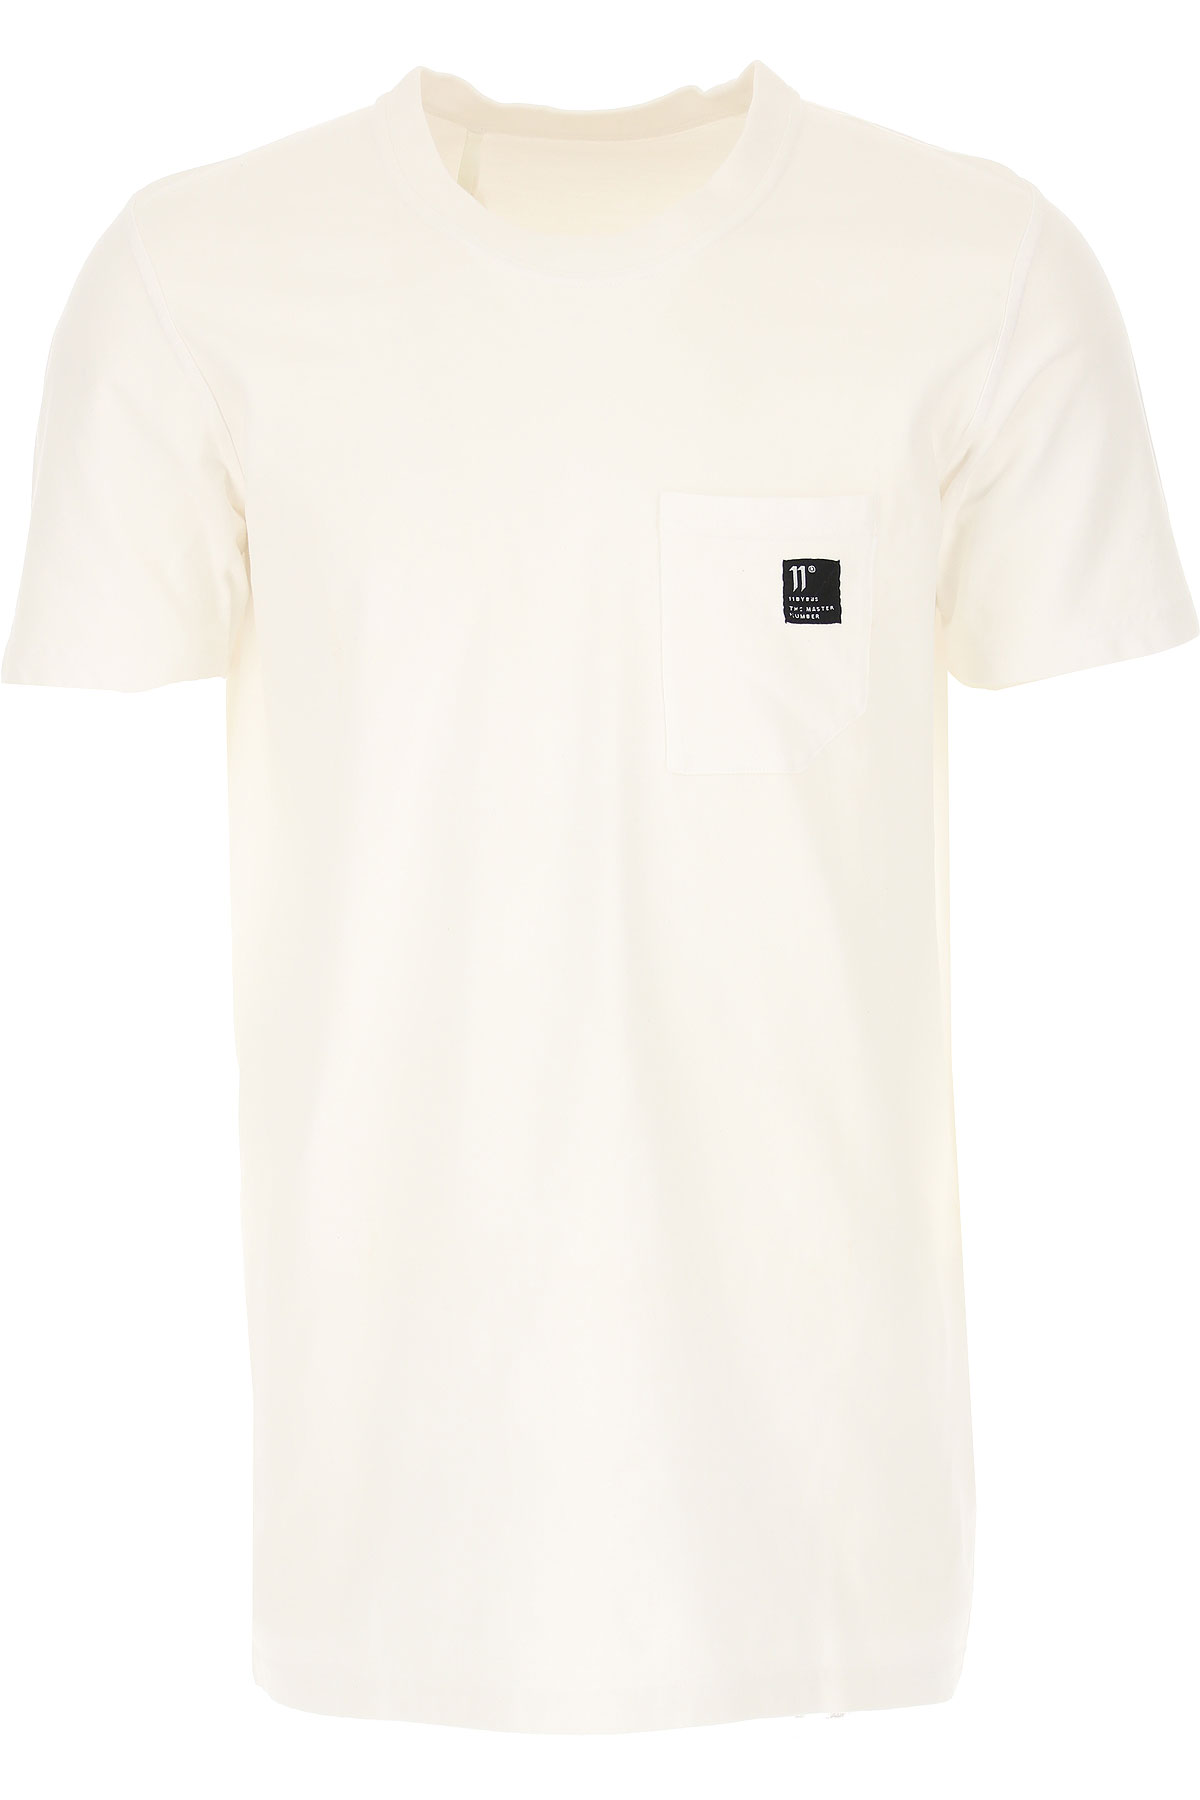 11 BY BORIS BIDJAN SABERI T-Shirt for Men, White, Cotton, 2017, L M